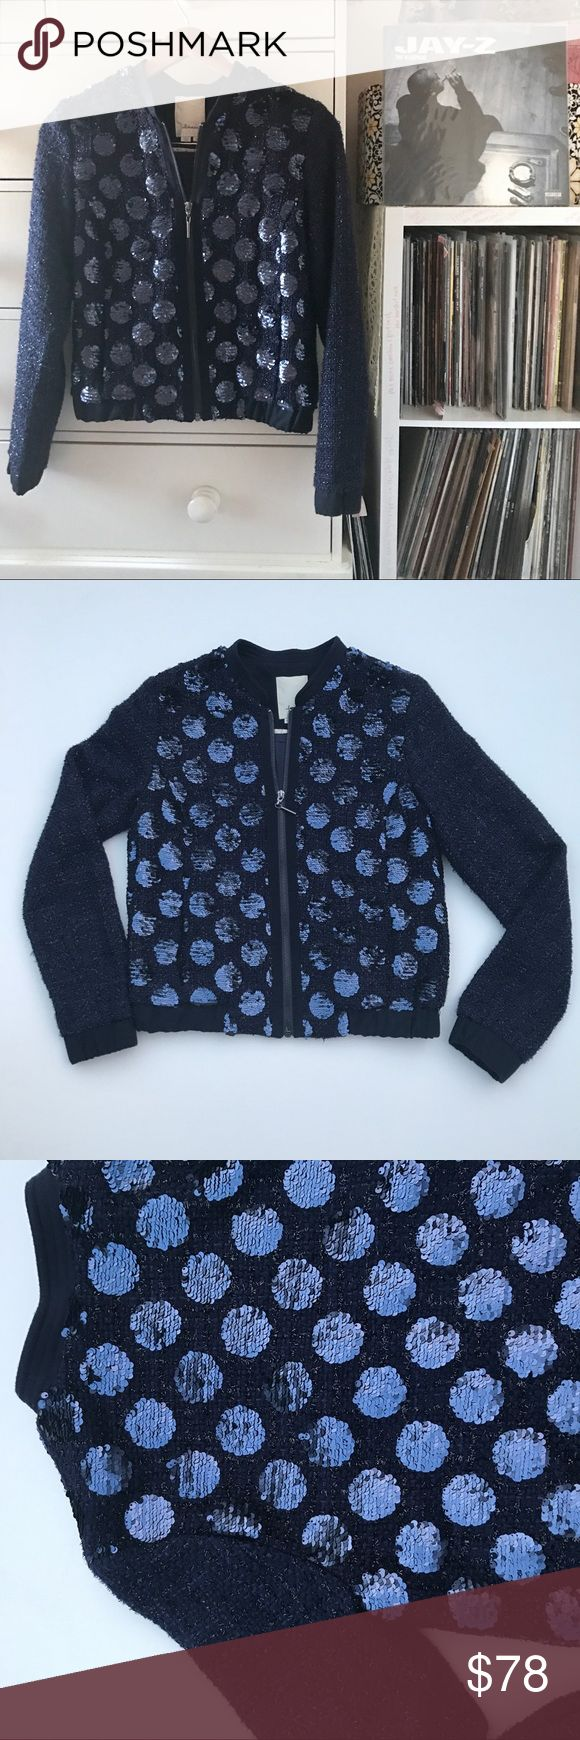 "Anthro Sequin Bomber Jacket Anthropologie  Eleveness  Sequin Bomber Jacket Full zip Side pockets  Glitter sparkle metallic thread sleeves  Navy blue round polka dot body   Size xs Measurements laying flat  Bust 18.5"" Waist 18"" Hip 16"" Total Length 21"" Excellent + preowned condition 8.4/10 I 💜offers  Pg23mon2.1 Anthropologie Jackets & Coats Utility Jackets"